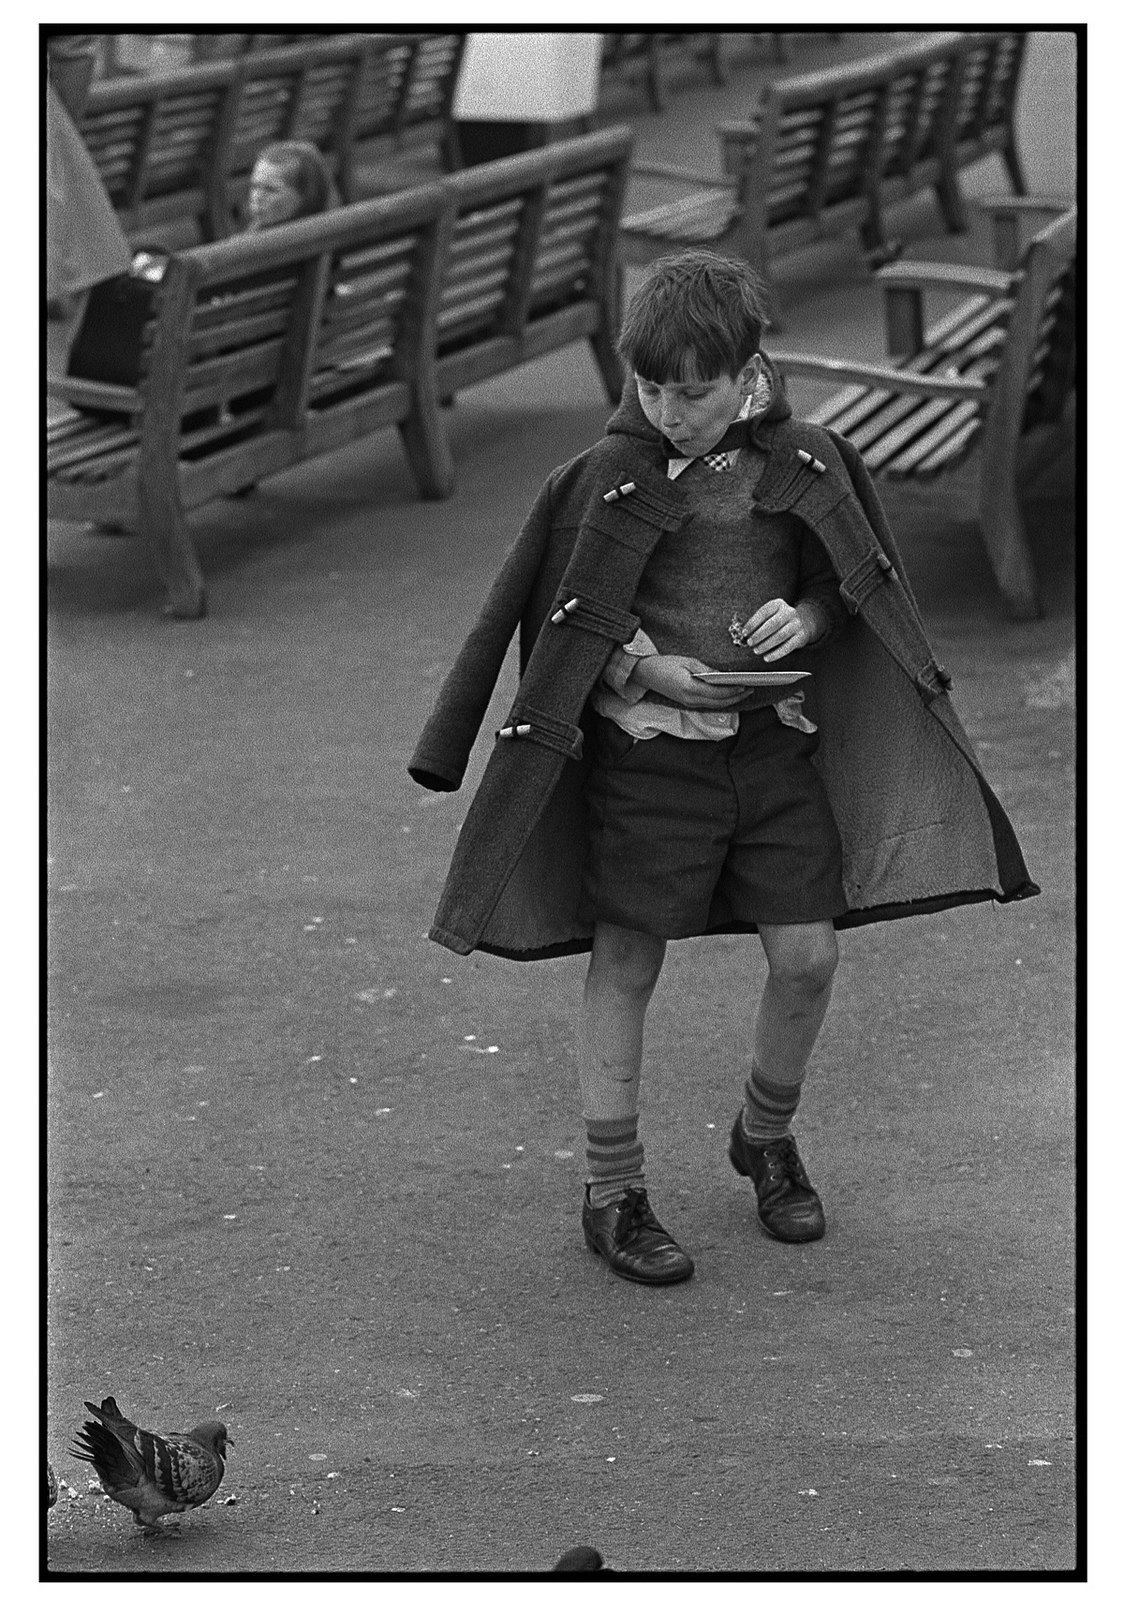 Erik van Straten London 1974 t